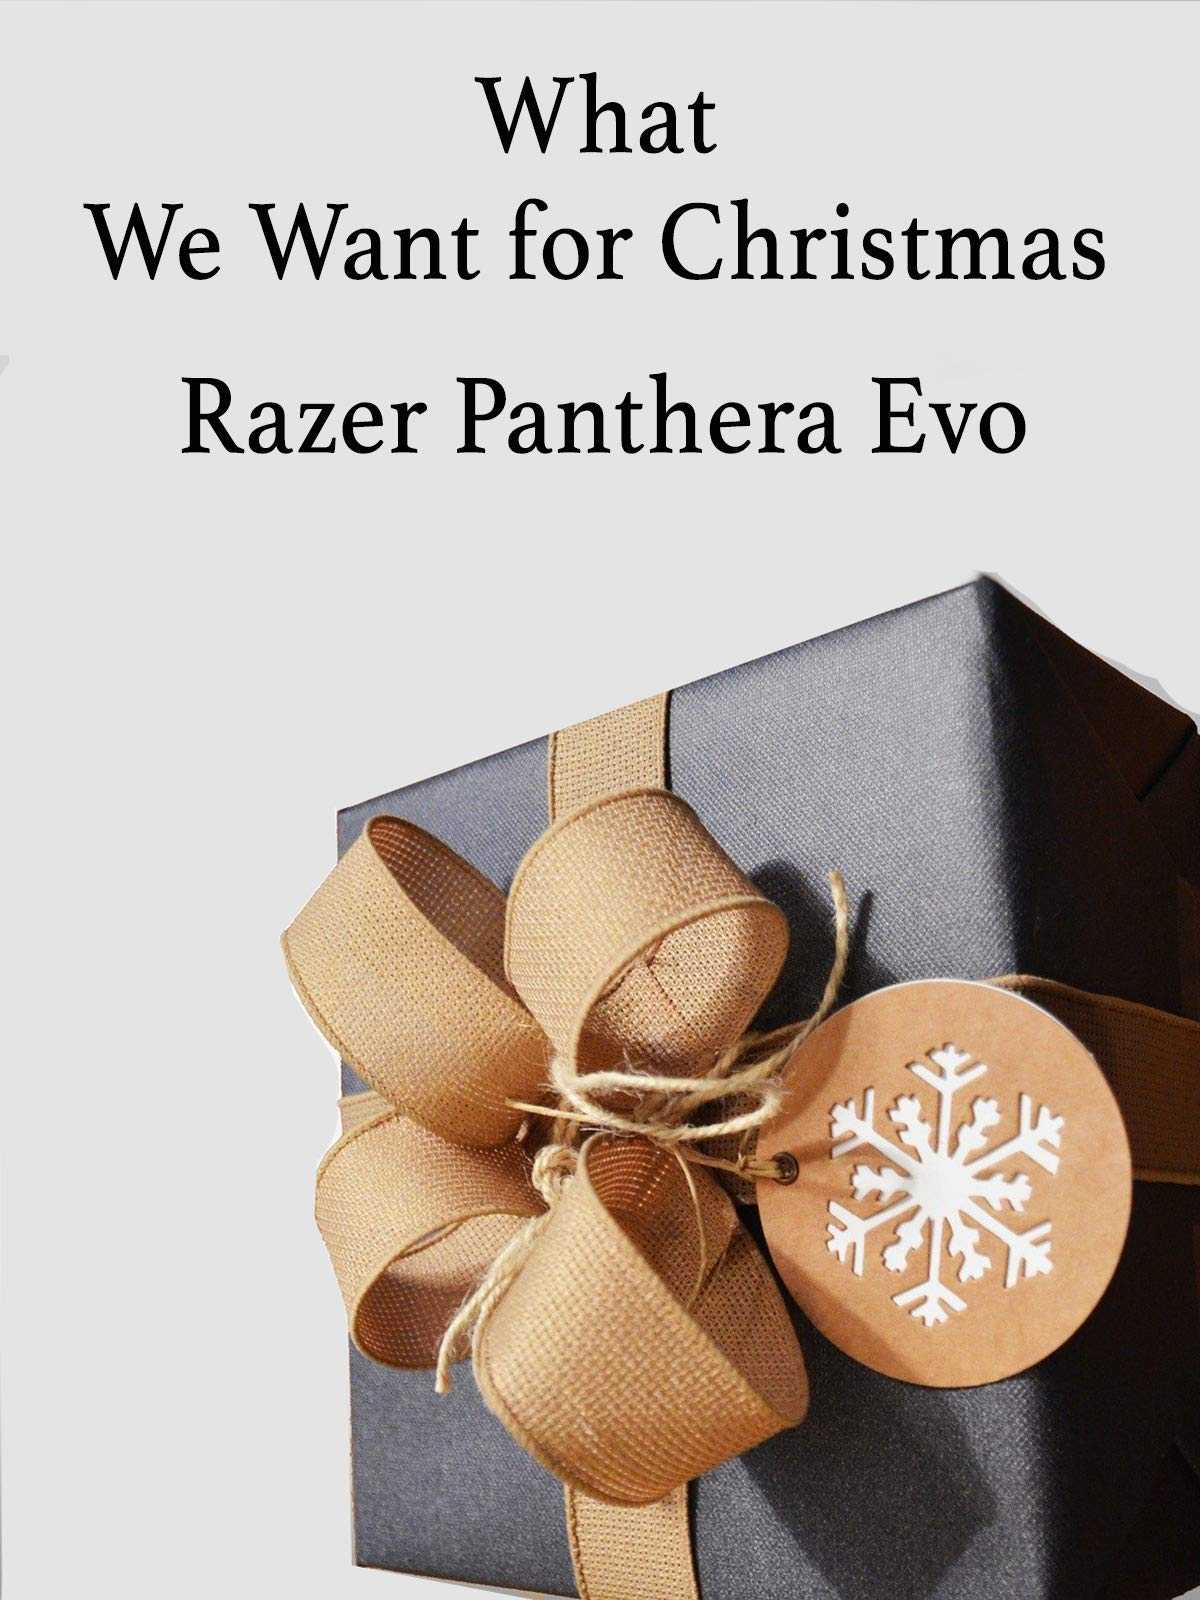 What We Want for Christmas Razer Panthera Evo